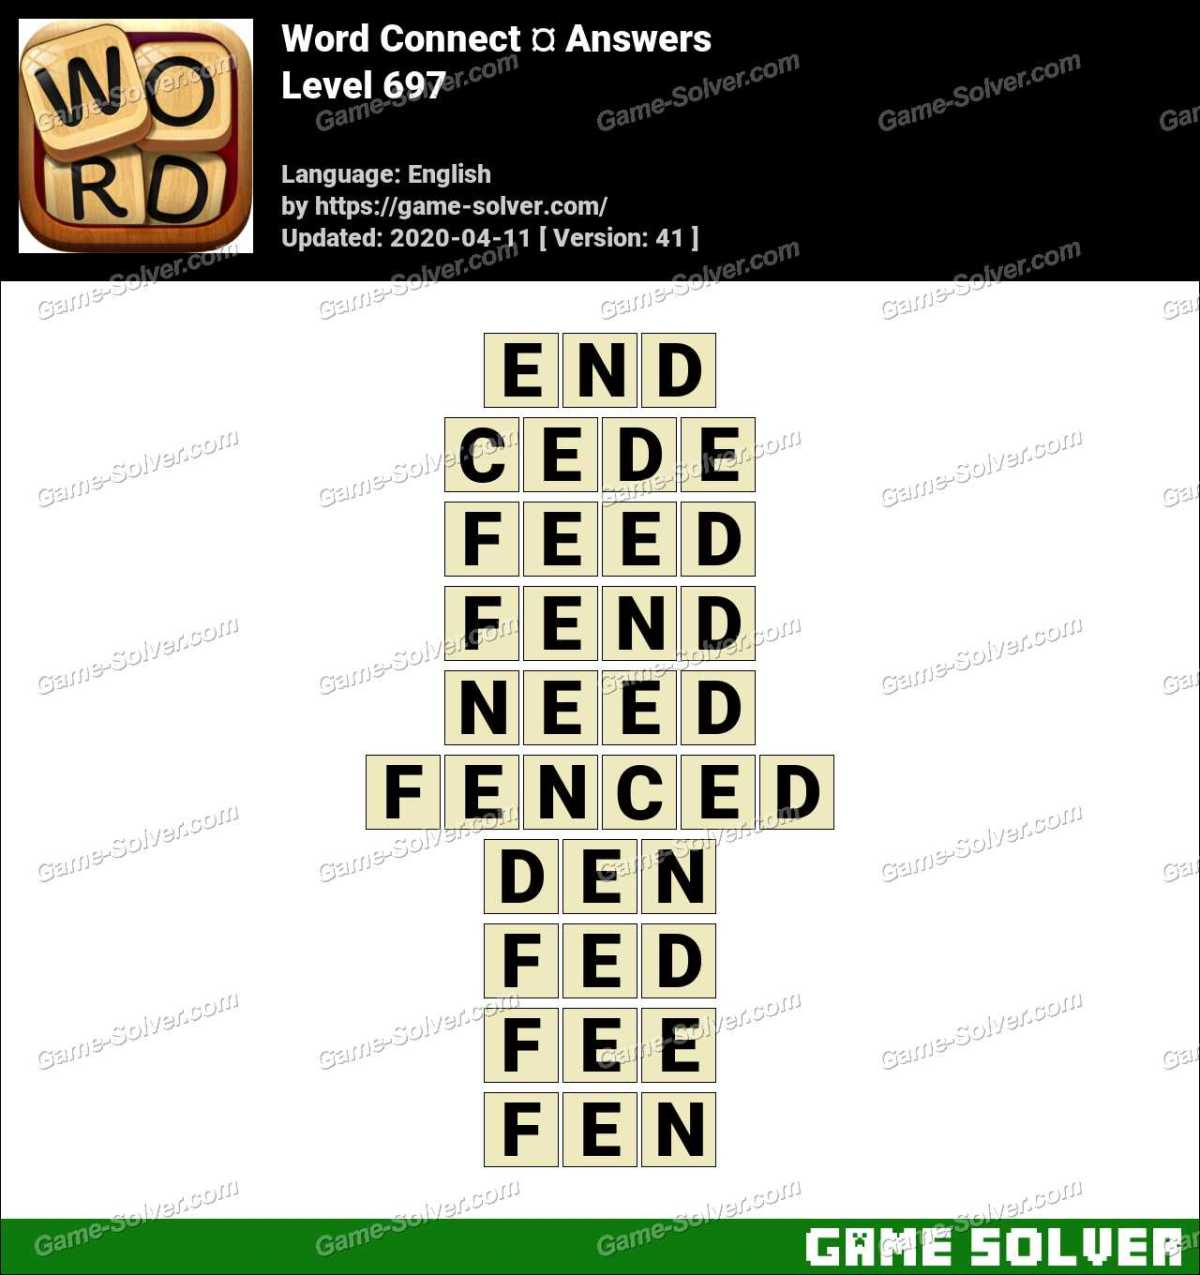 Word Connect Level 697 Answers